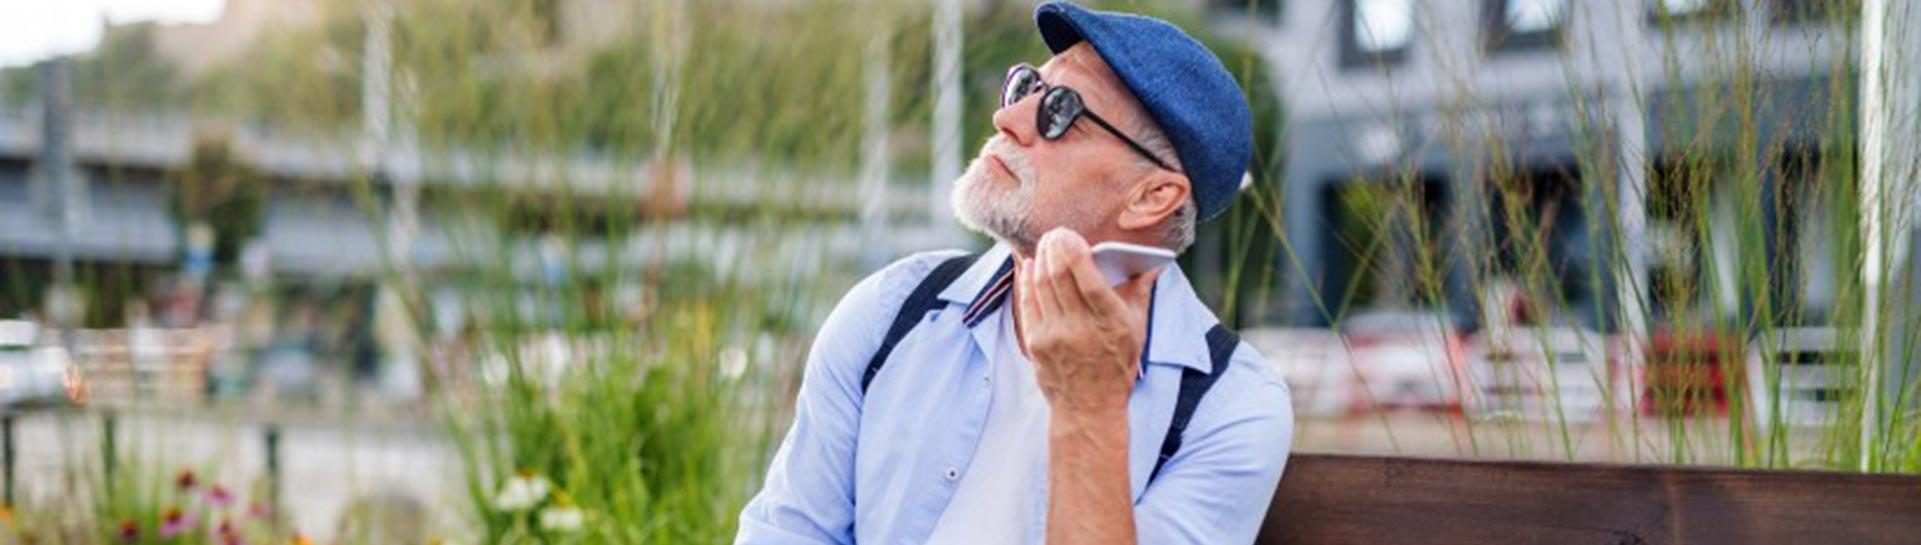 A vision impaired man uses a smartphone.